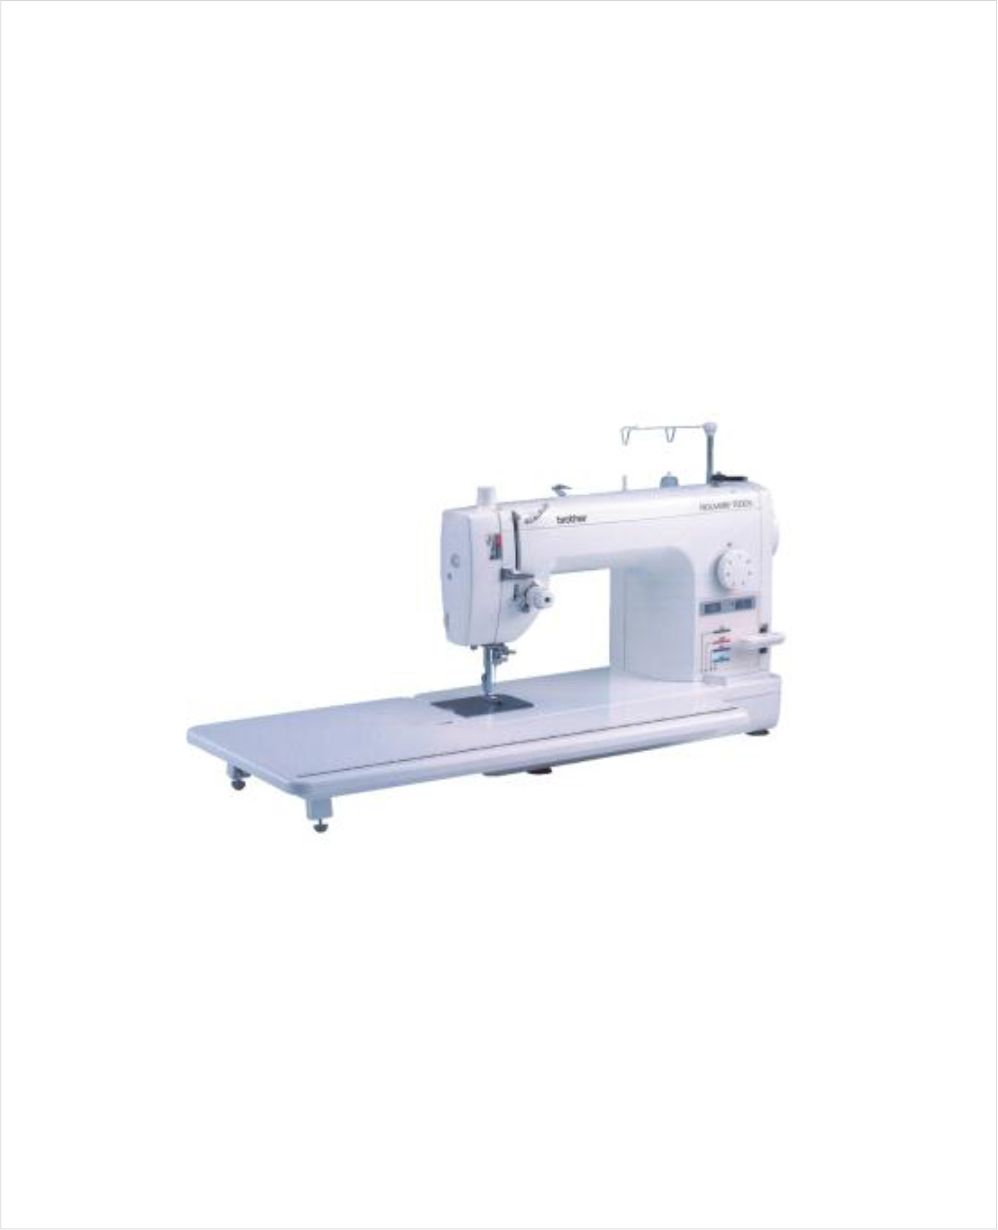 Brother pq1500s